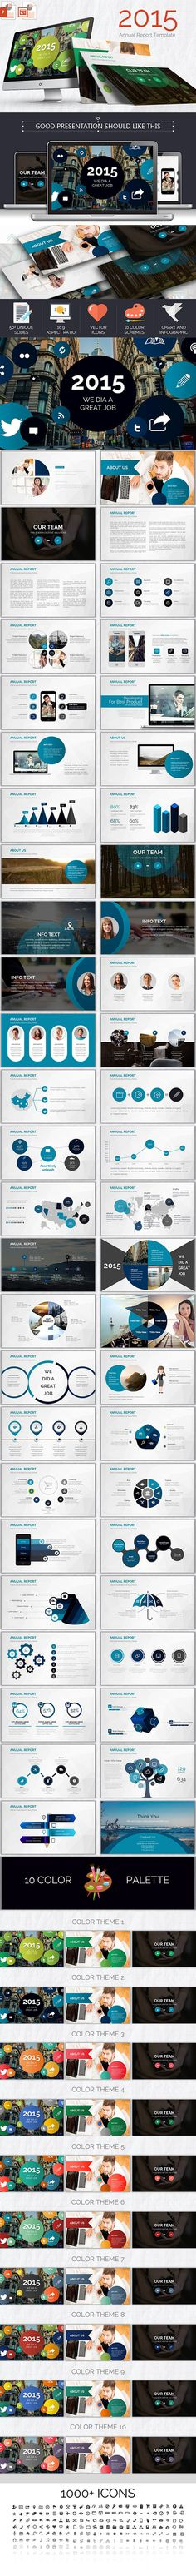 2015 anual powerpoint report Template #design #slides Download: http://graphicriver.net/item/2015-anual-powerpoint-report/12475796?ref=ksioks